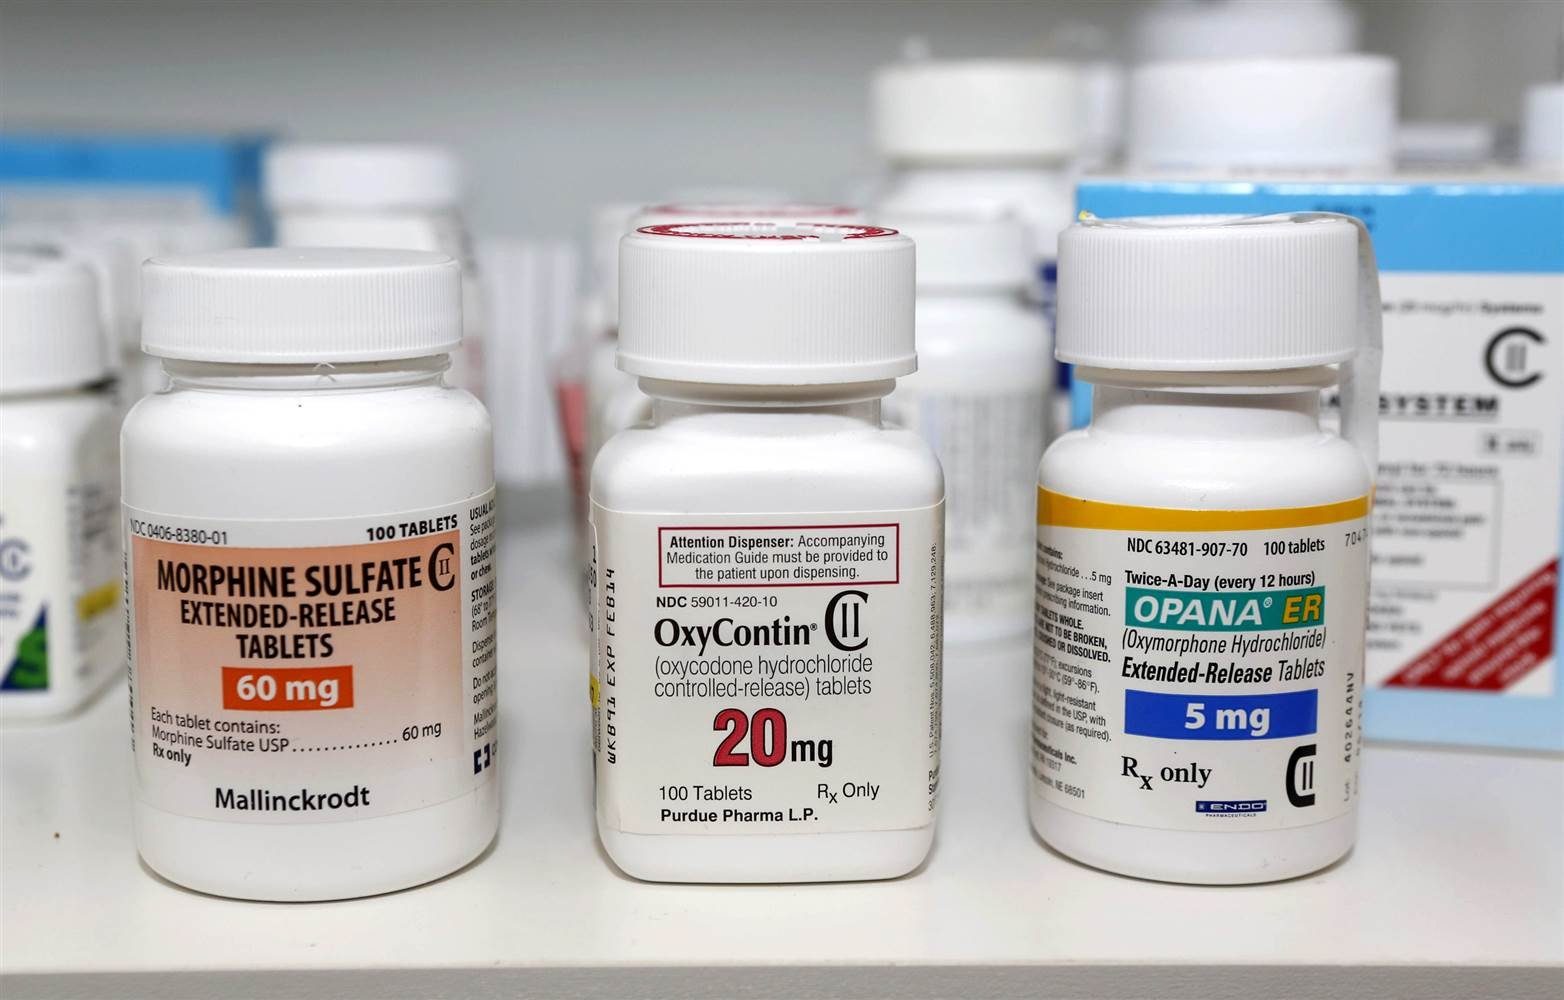 FDA requests first opioid removal from market after abuse sparks HIV outbreak